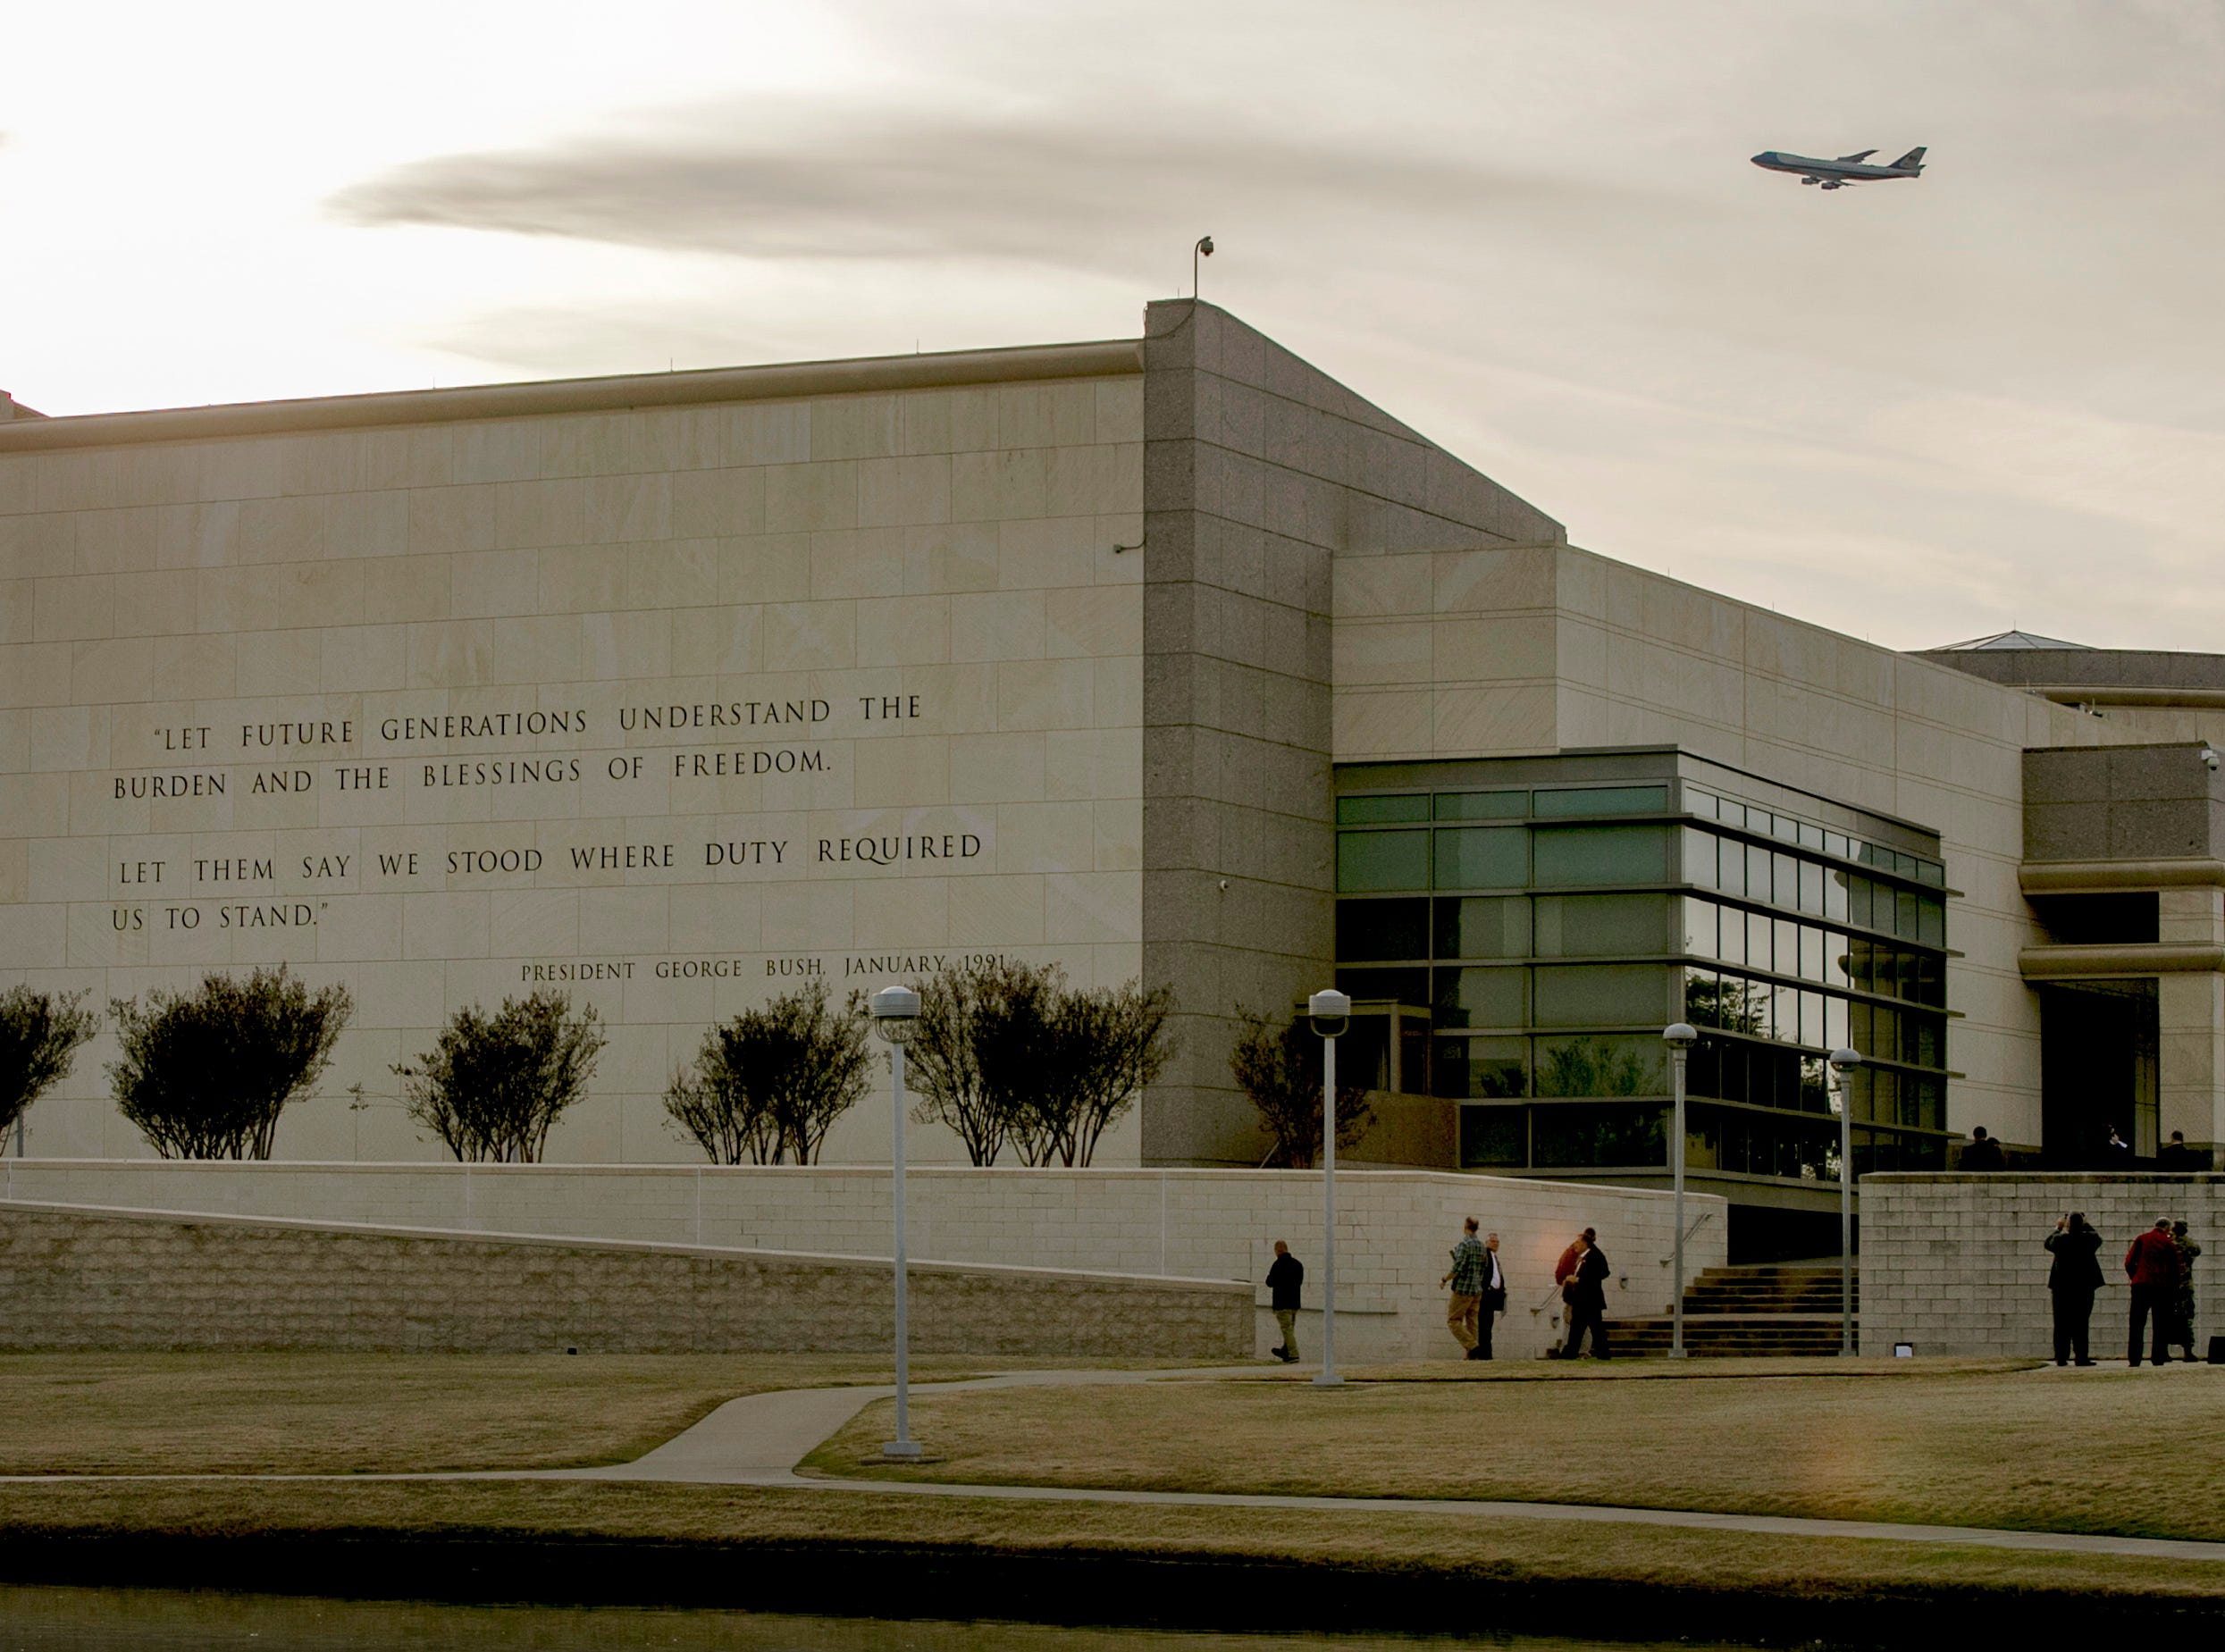 Special Air Mission 41 carries the body of President George H.W. Bush over the George H.W. Bush Presidential Library at Texas A&M University in College Station, Texas, on Wednesday, Dec. 5, 2018, the day before he will be buried there.